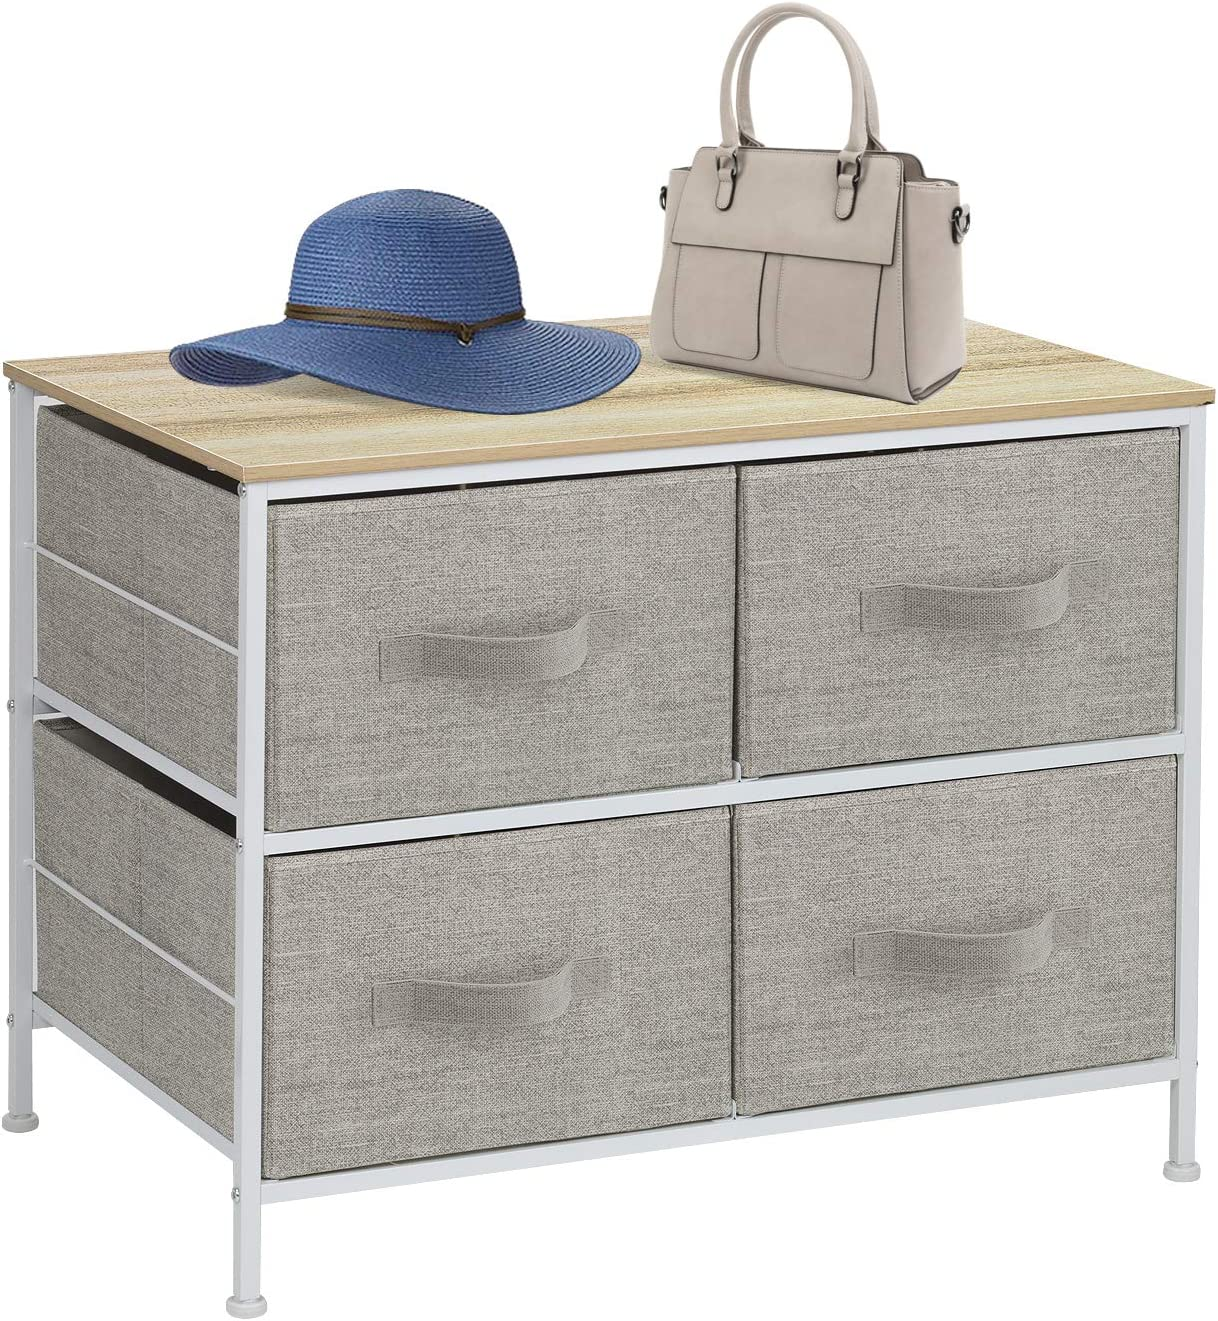 Sorbus Dresser with 4 Drawers – Furniture Storage Tower Unit for Bedroom, Hallway, Closet, Office Organization – Steel Frame, Wood Top, Easy Pull Fabric Bins Beige